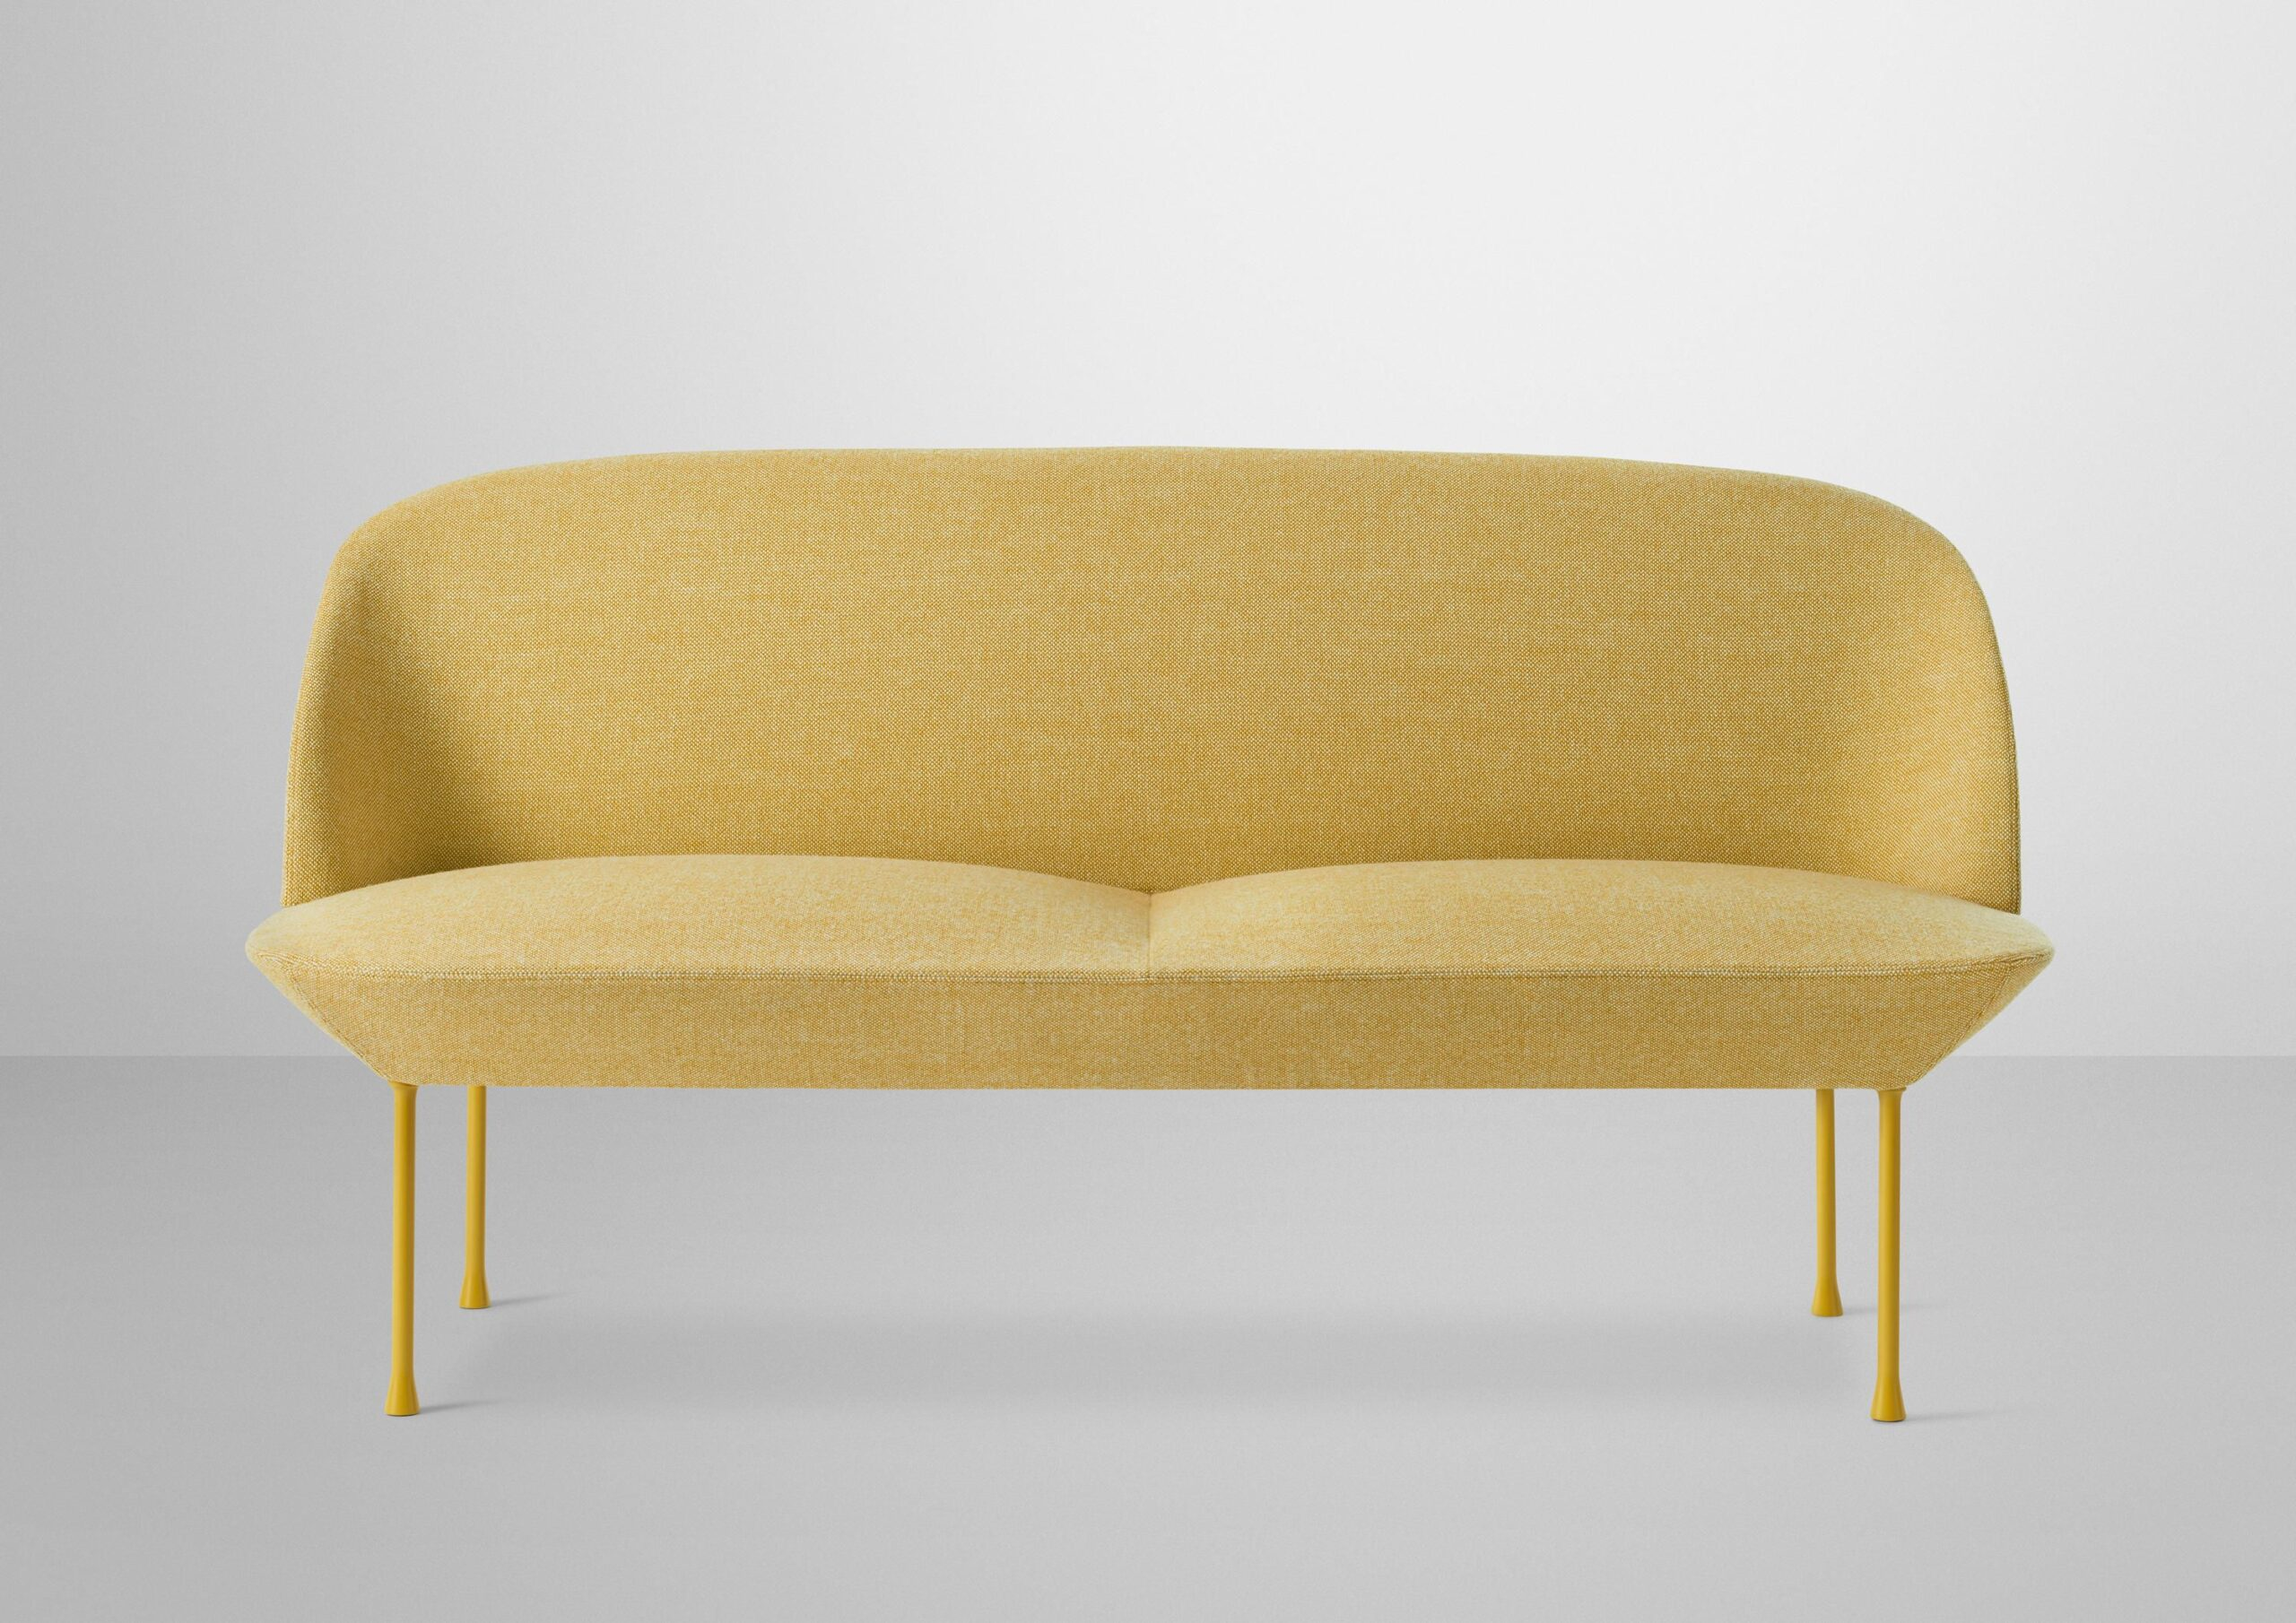 Full Size of Muuto Sofa Sofabord Xl Compose Review Outline Chaise Longue Connect Dimensions 2 Seater Uk Leather Oslo Lounge Sofas From Frisch Kissen Big Kaufen Rund Benz Sofa Muuto Sofa